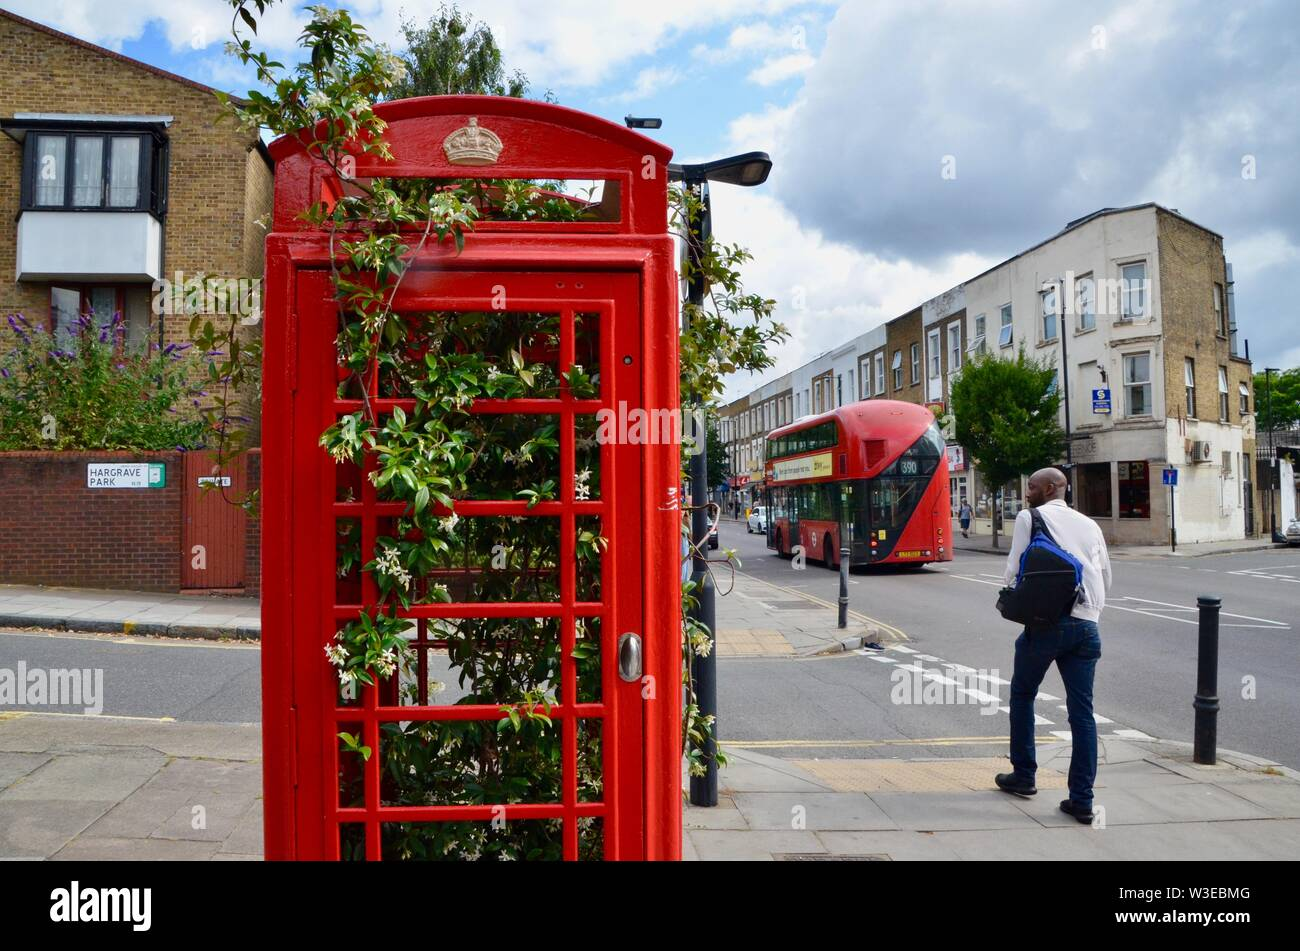 iconic red telephone box kiosk in london containing growing bush near archway Stock Photo